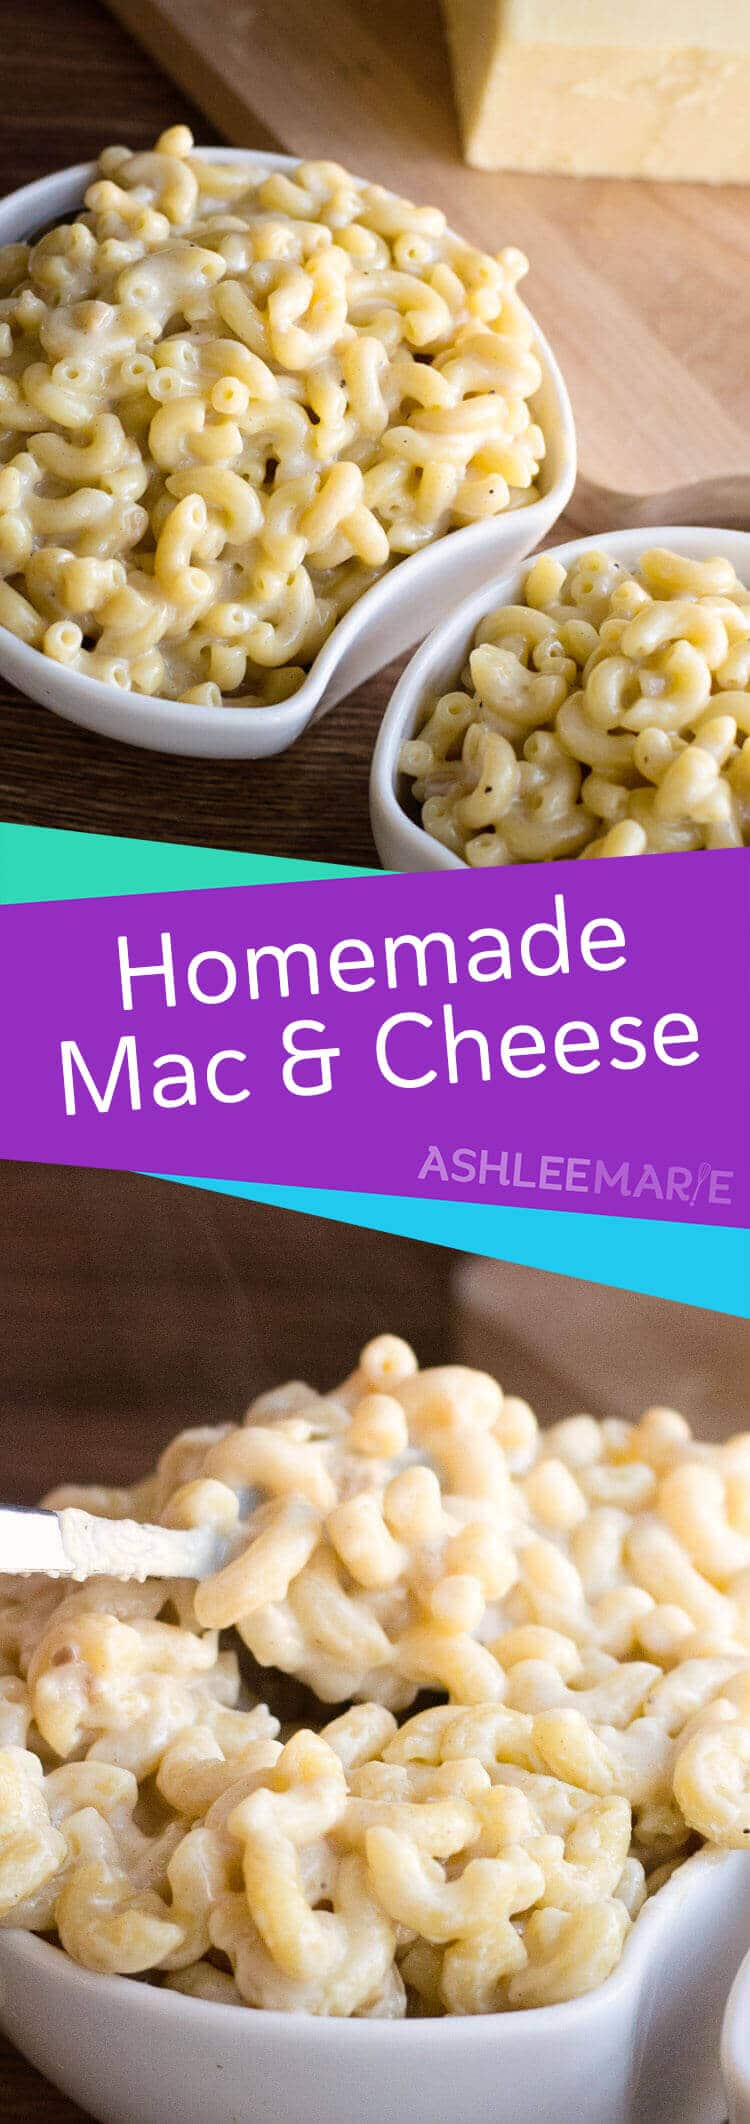 no fail homemade mac and cheese recipe